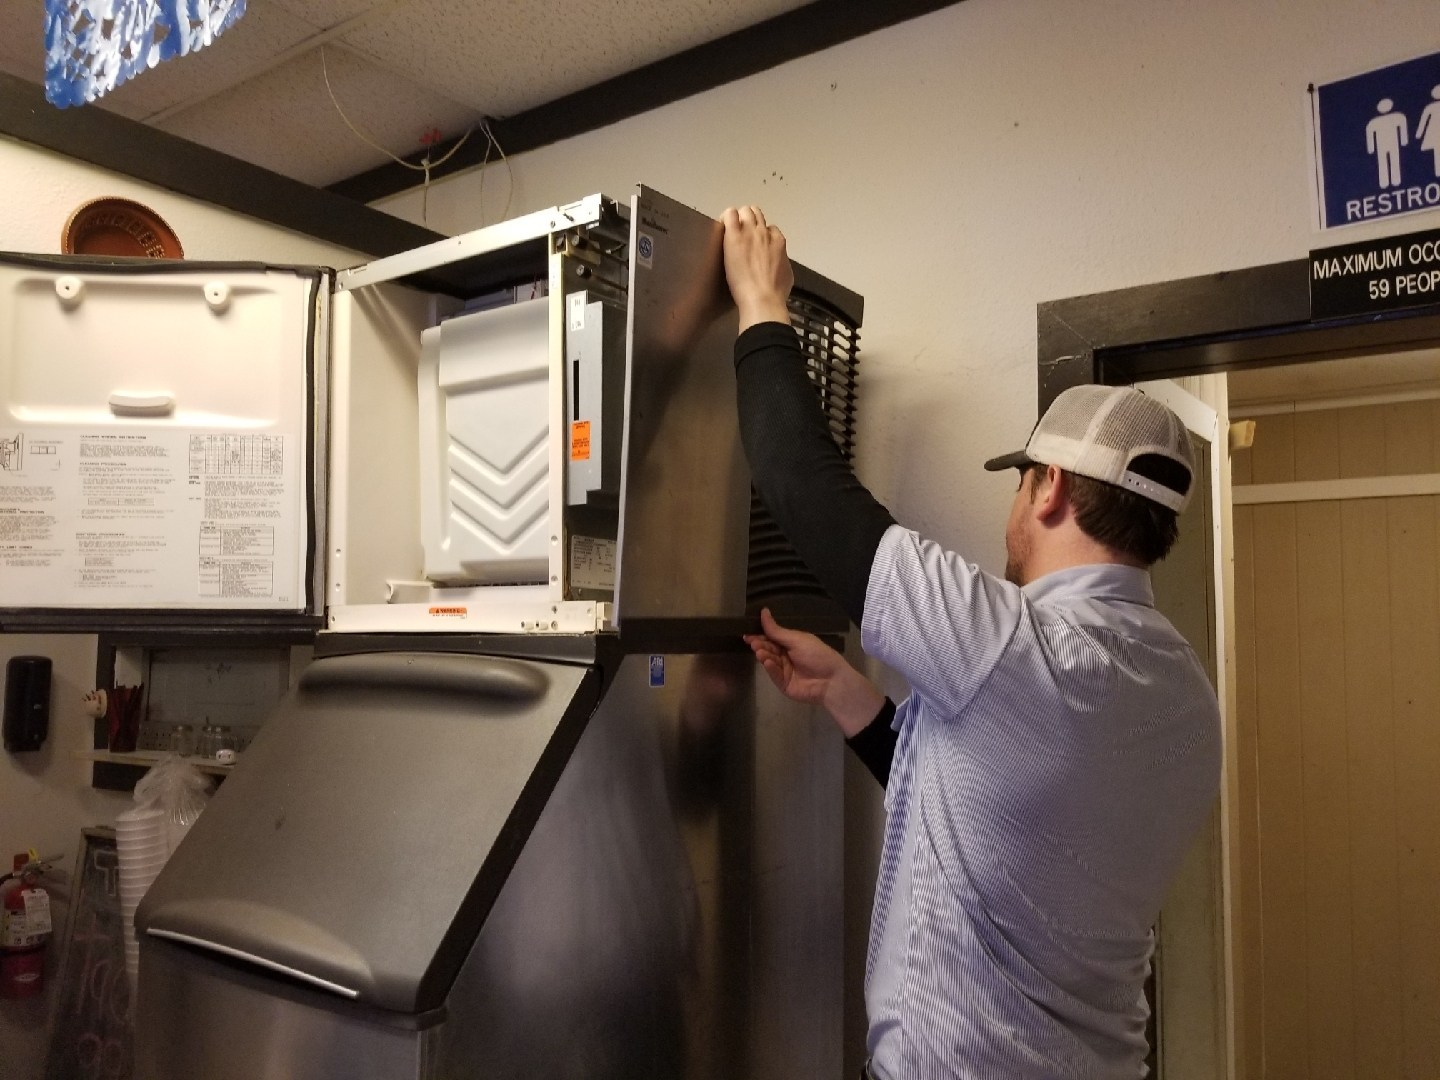 Commercial Ice Machine Repair near Me, Commercial Ice Machine Repair Near Me – Services the Company Provides